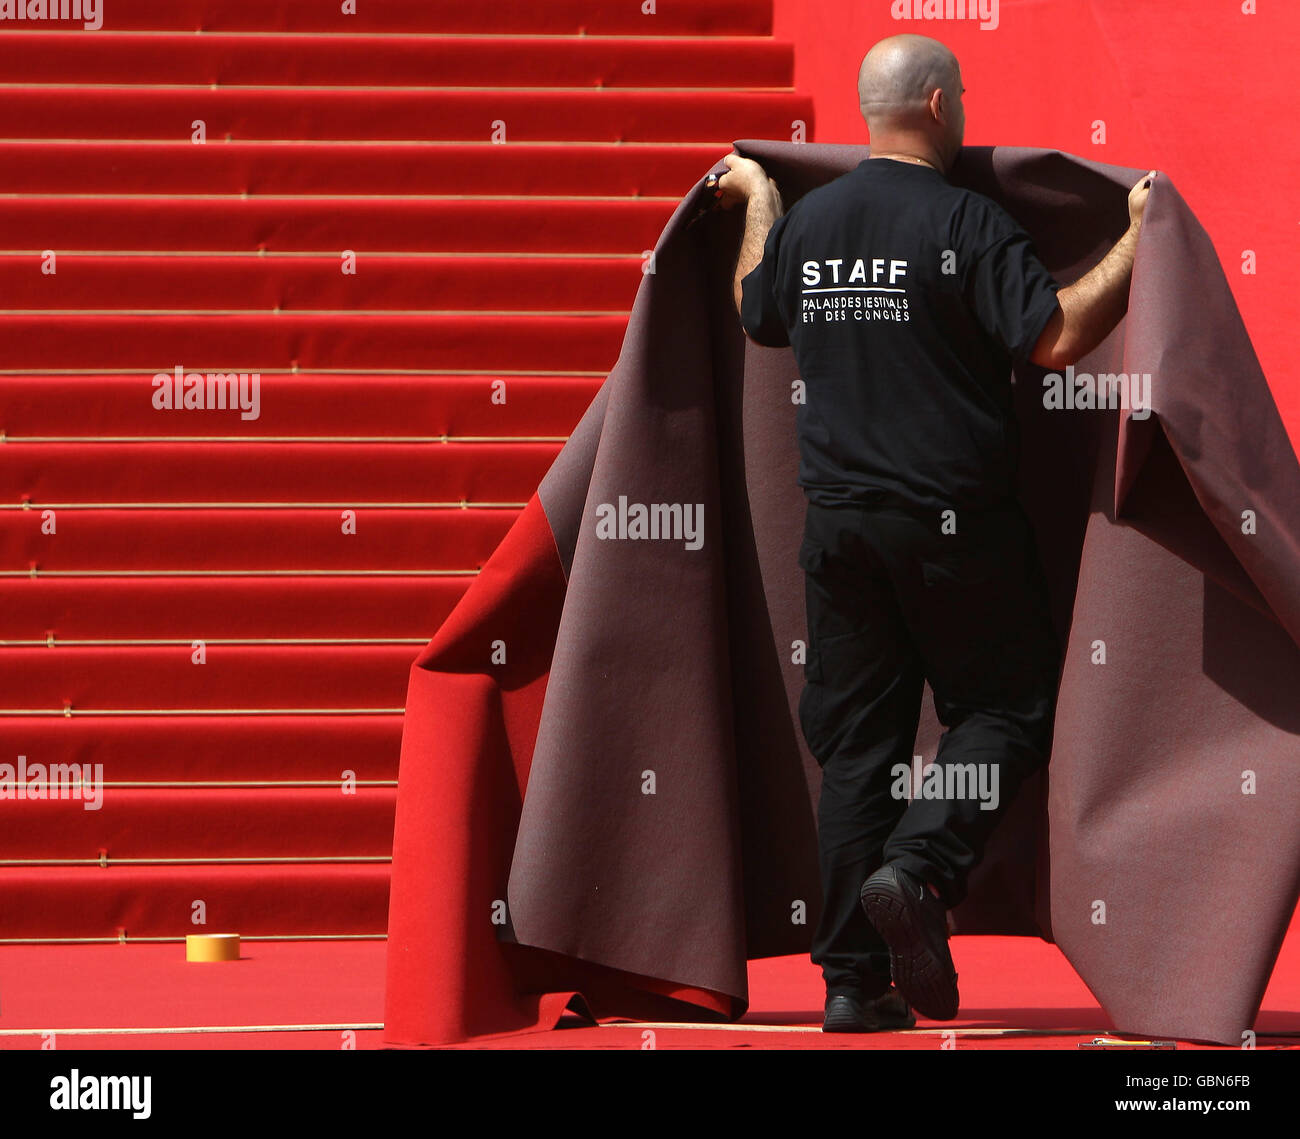 The 62nd Annual Cannes Film Festival - General Atmosphere - France Stock Photo